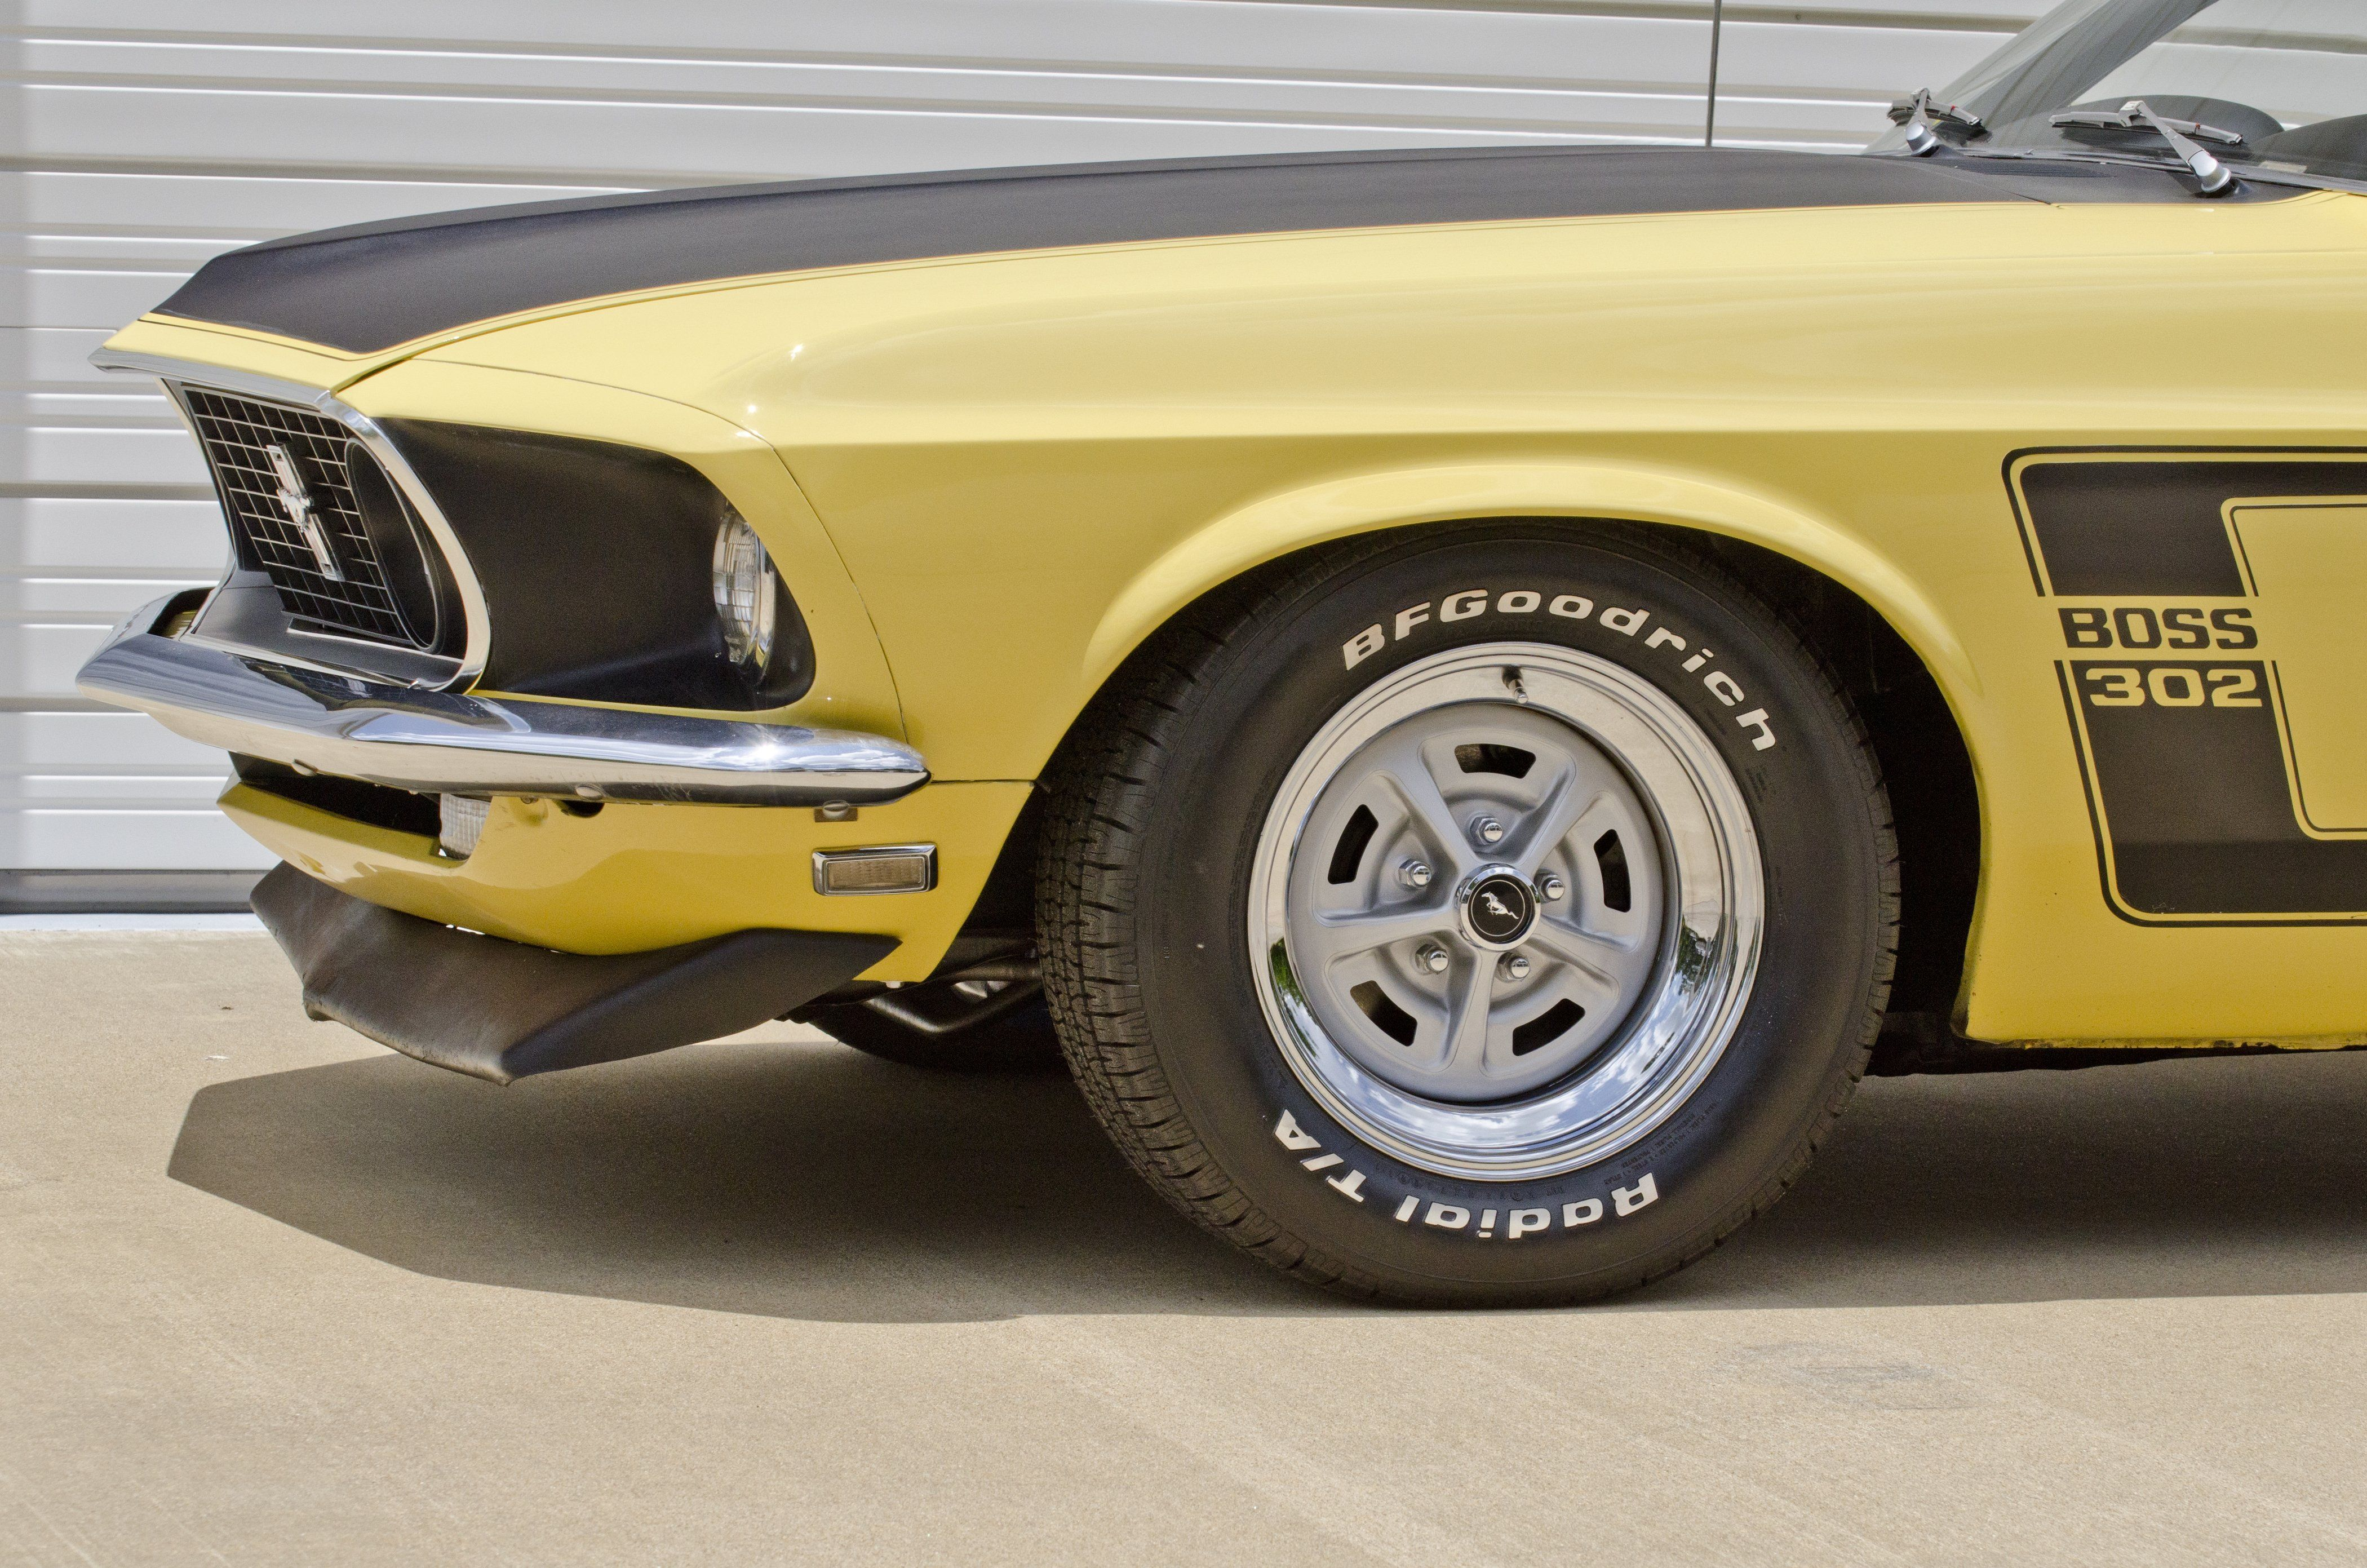 1969 Ford Mustang Boss 302 Fastback Muscle Classic USA 4200x2790 06